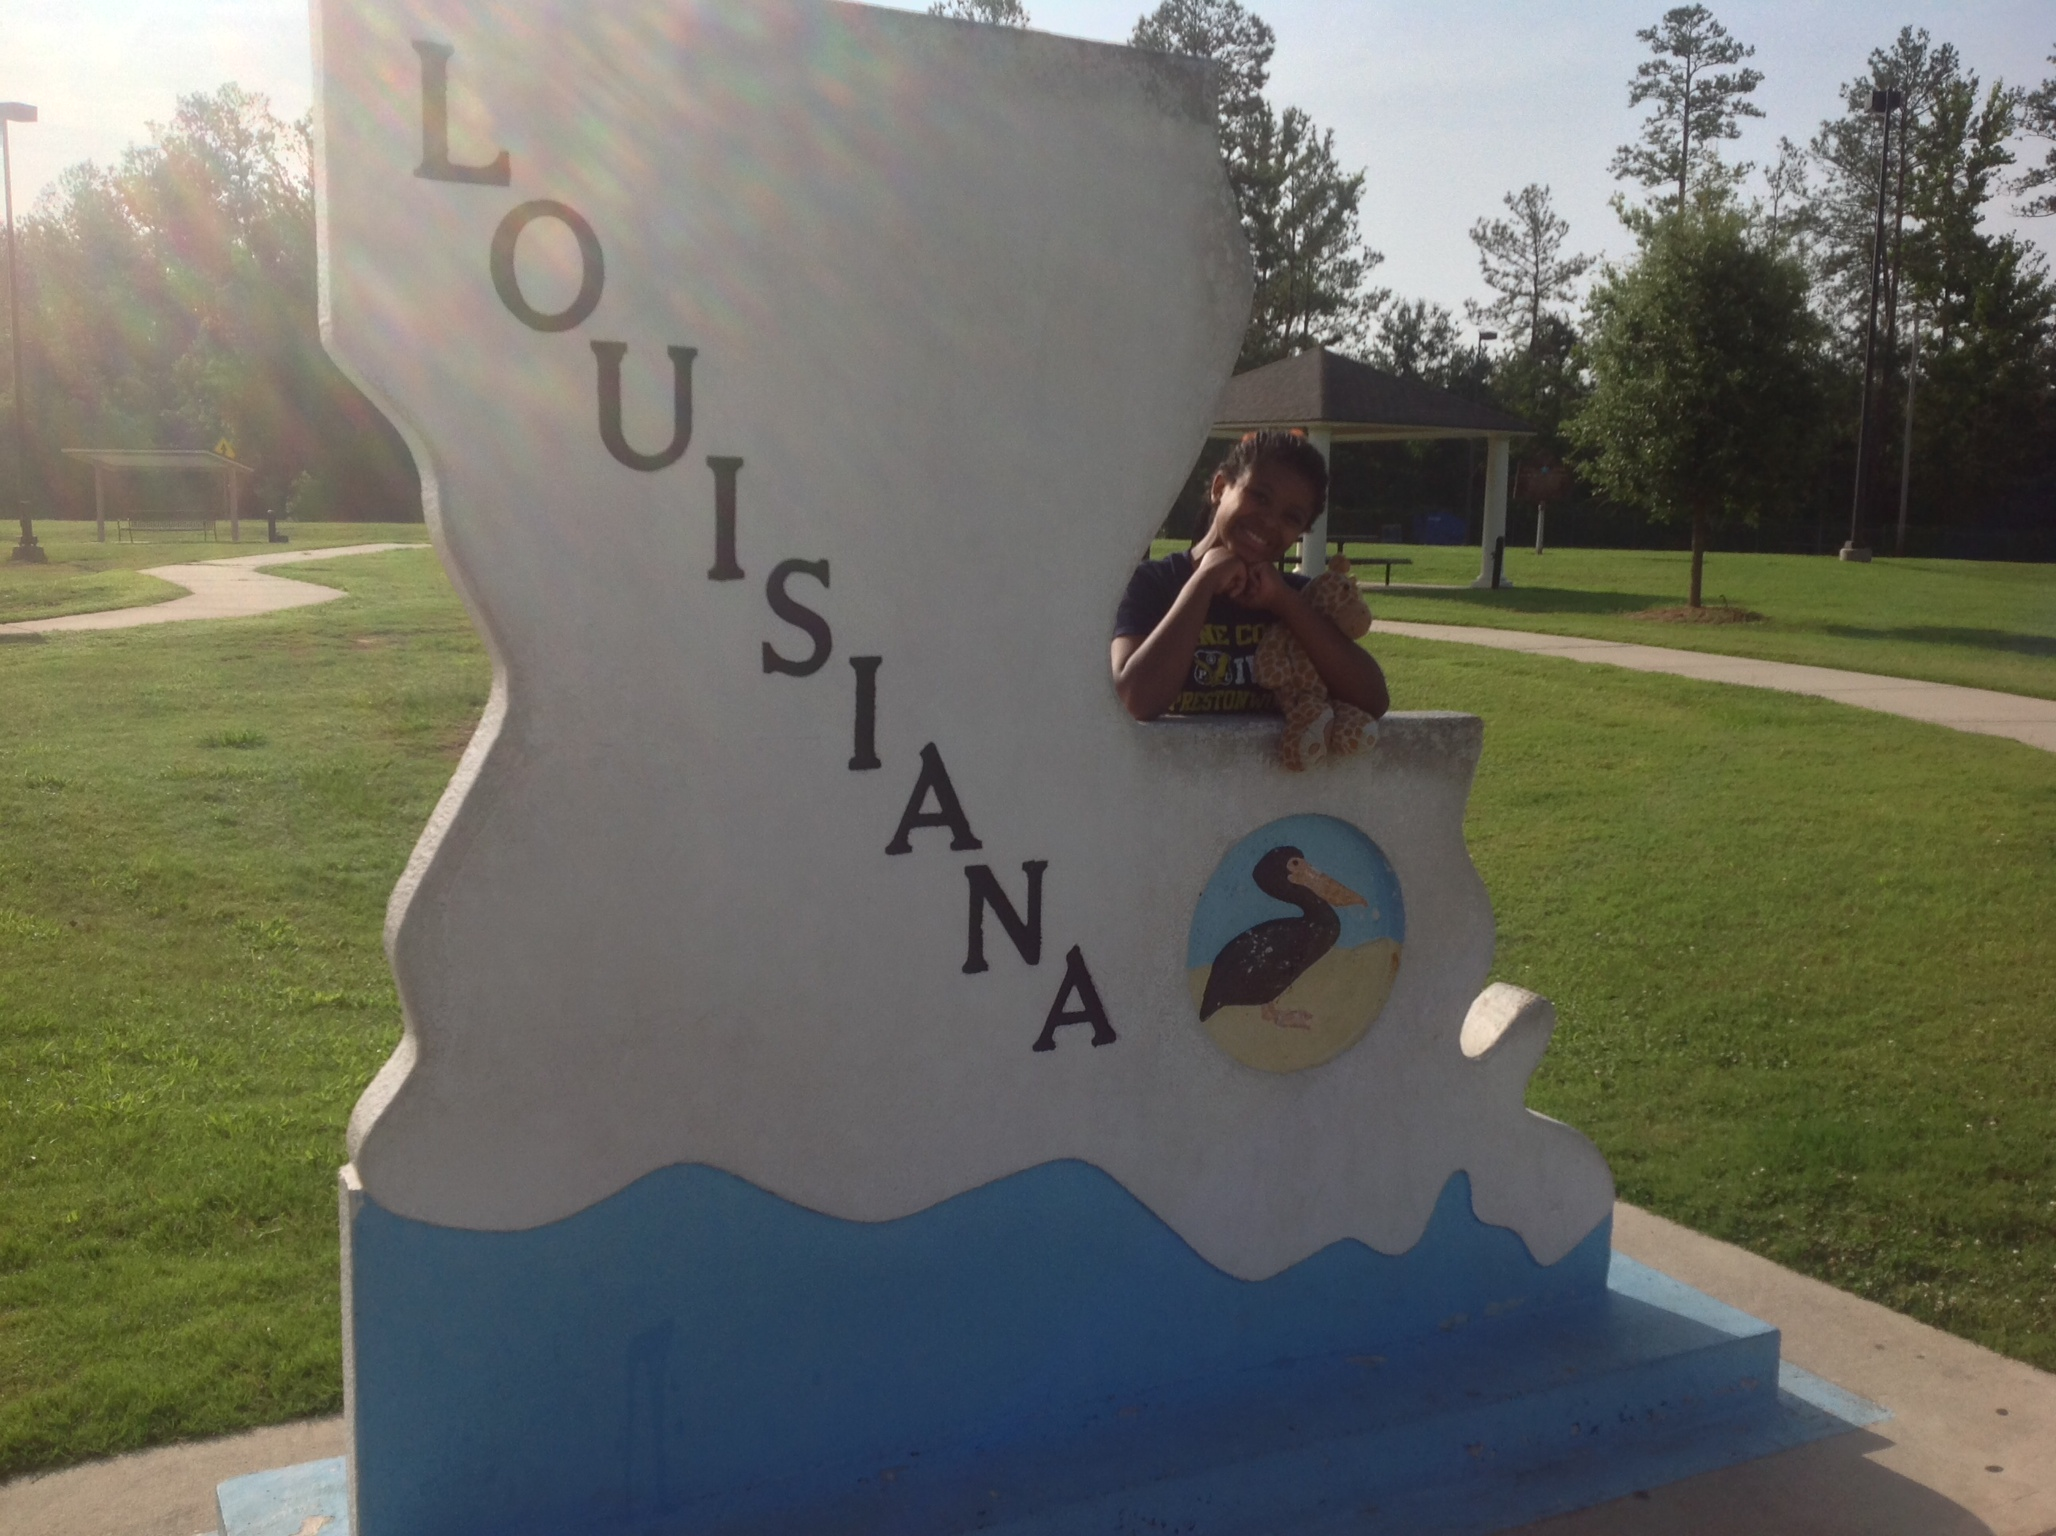 Teddy and Cub #2 with the Louisiana State sign.